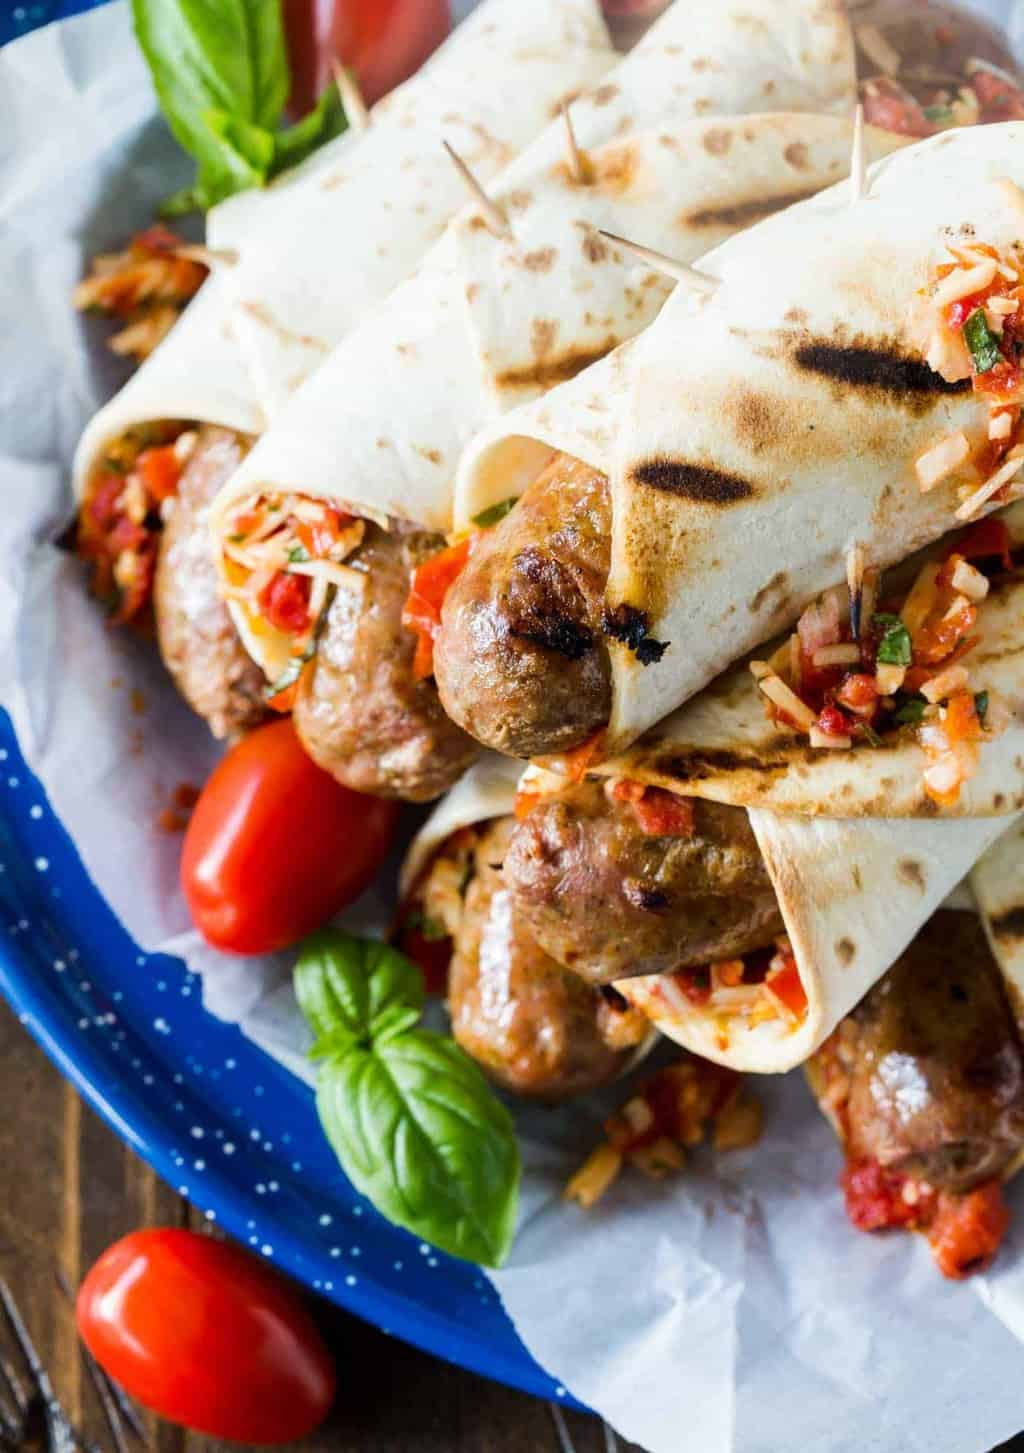 Picture of Grilled Italian Sausages piled high on a blue plate. Sausages are wrapped in grilled flatbreads and garnished with a roasted tomato, asiago cheese and basil relish.